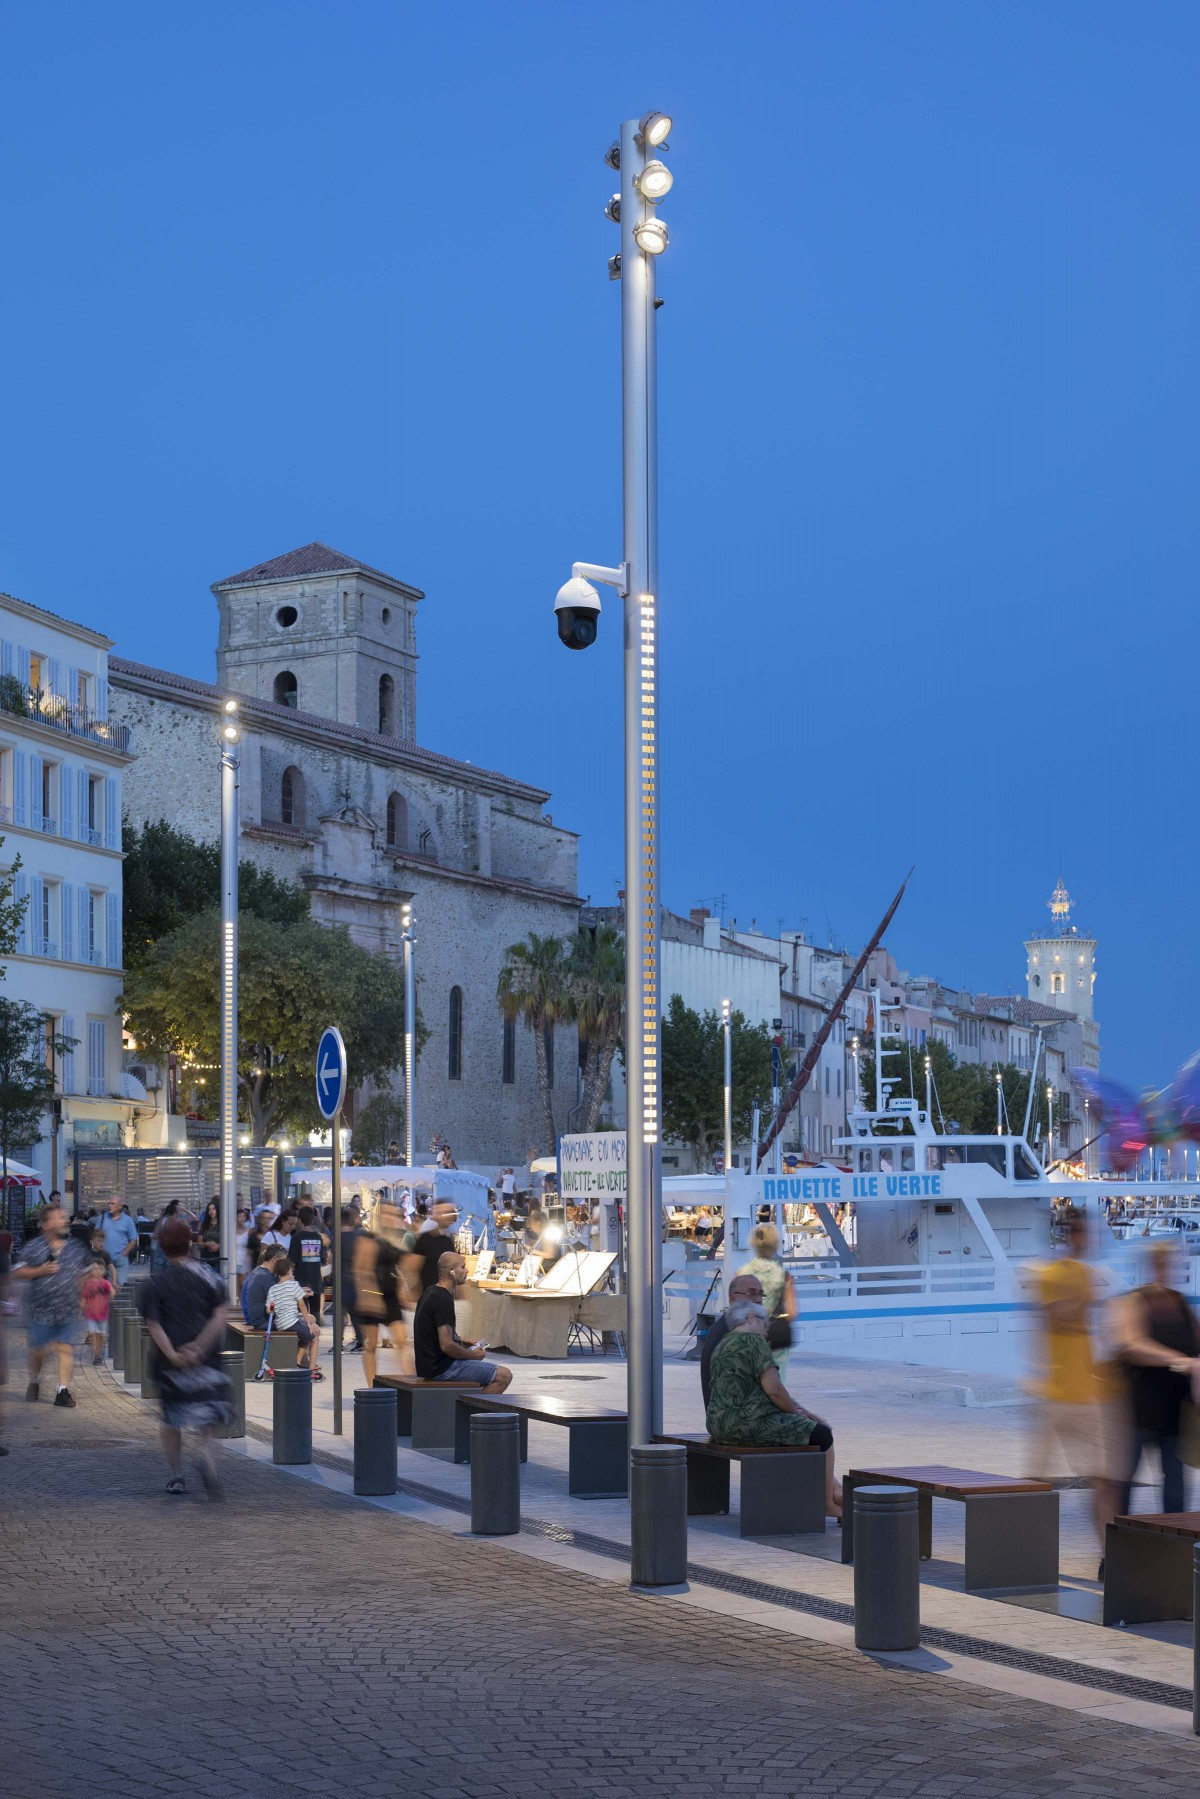 The lighting of the new promenade needed to ensure increased and uniform visual comfort for users. – Xavier Boymond